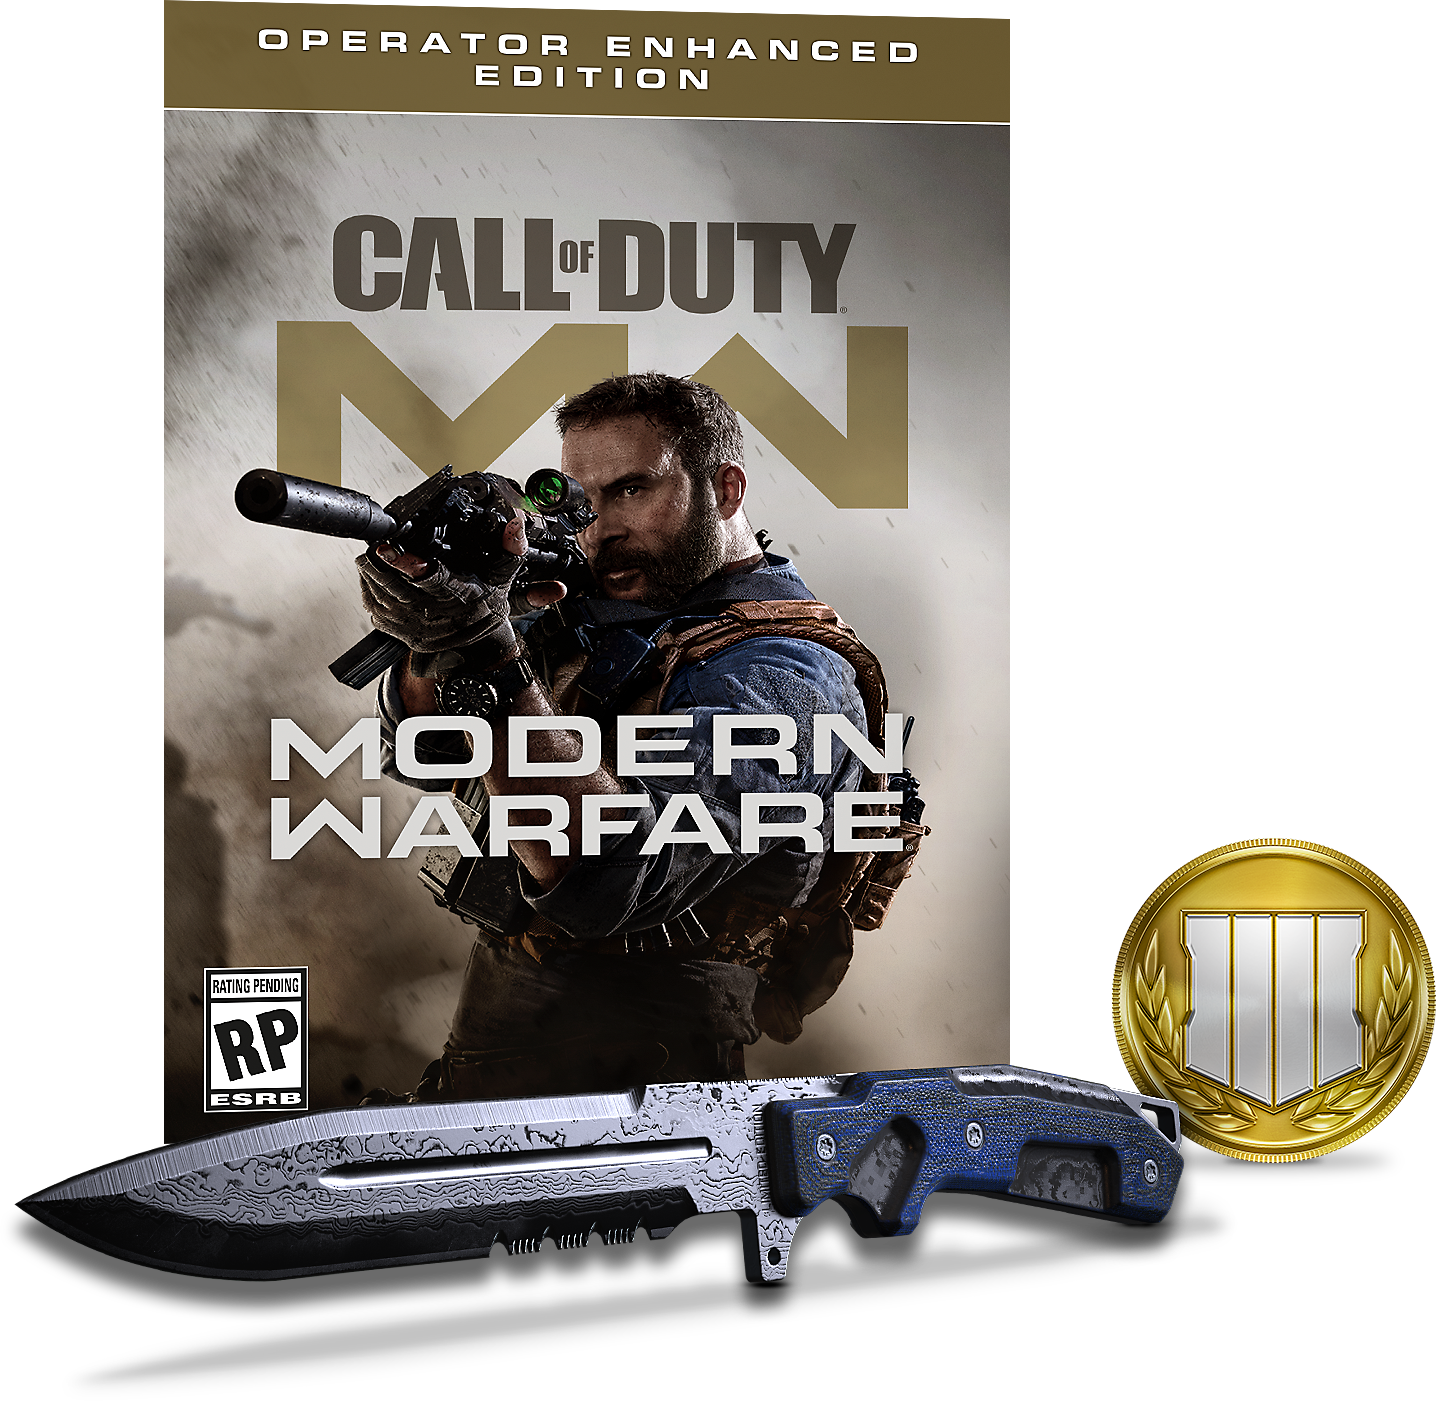 Call of Duty Modern Warfare Operator Enhanced Edition Digital Items